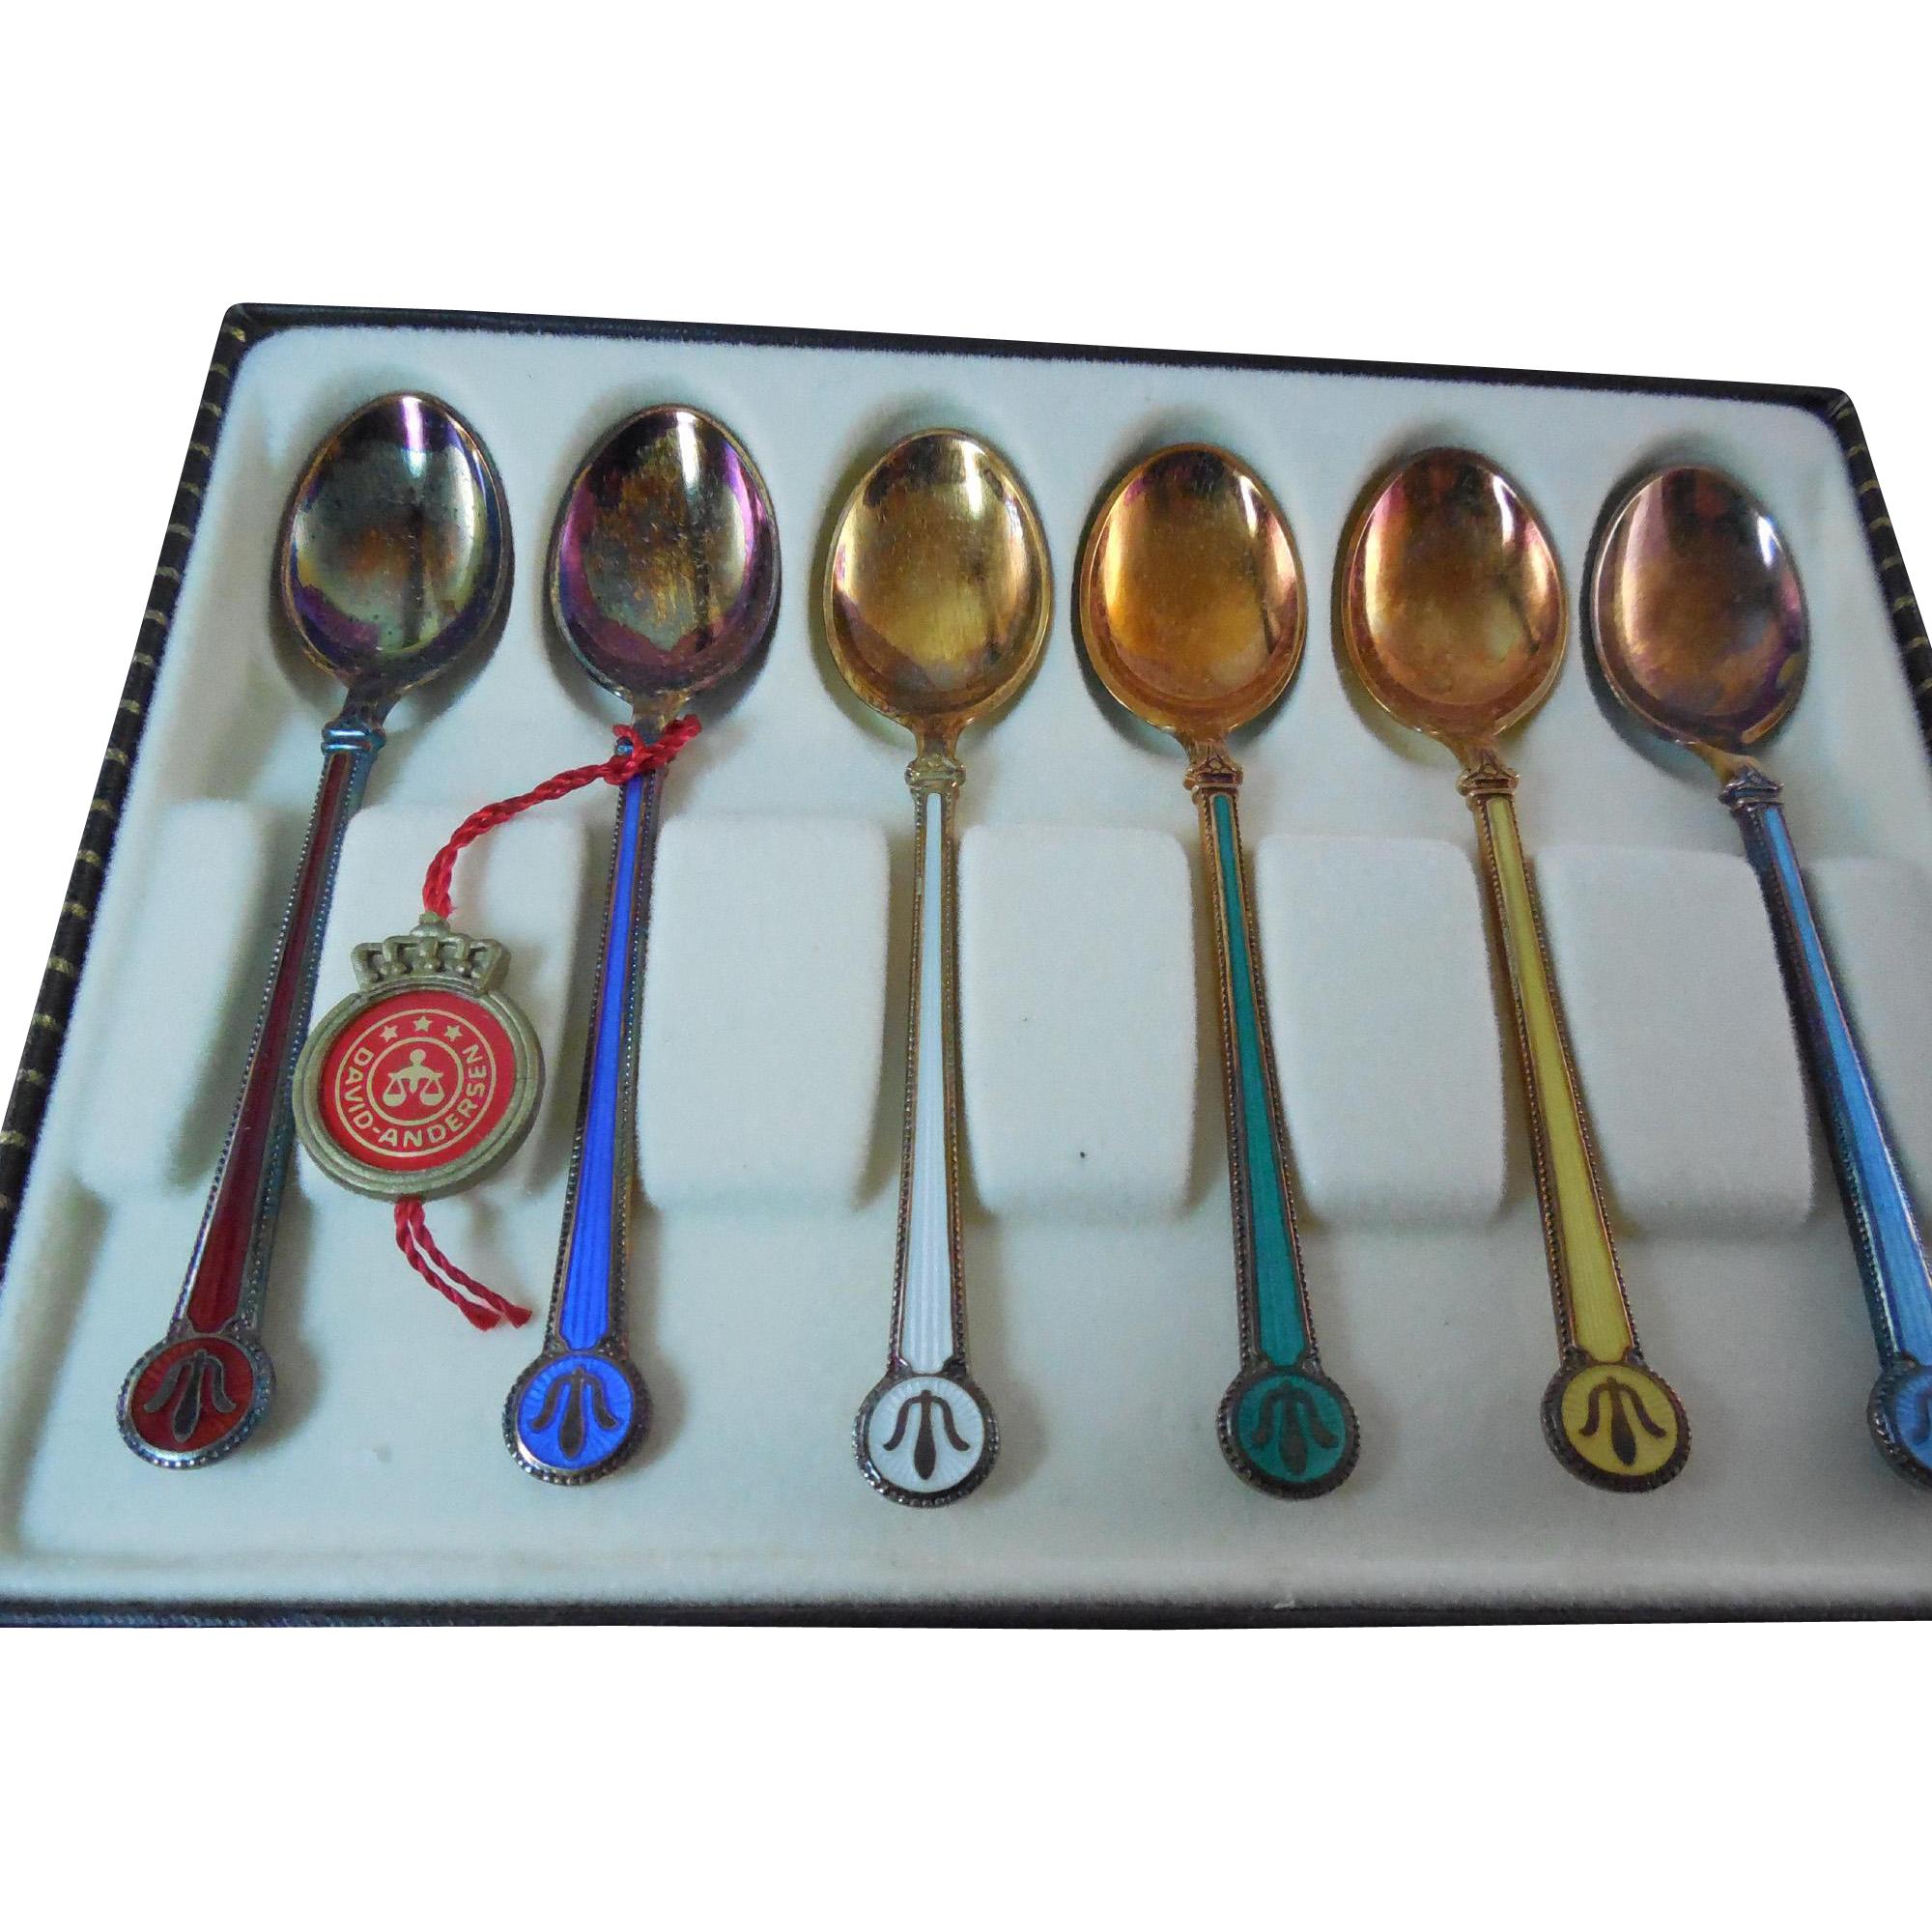 6 Vintage Sterling Enamel David Andersen Double Sided Enamel Spoon Set Original Box and Tag